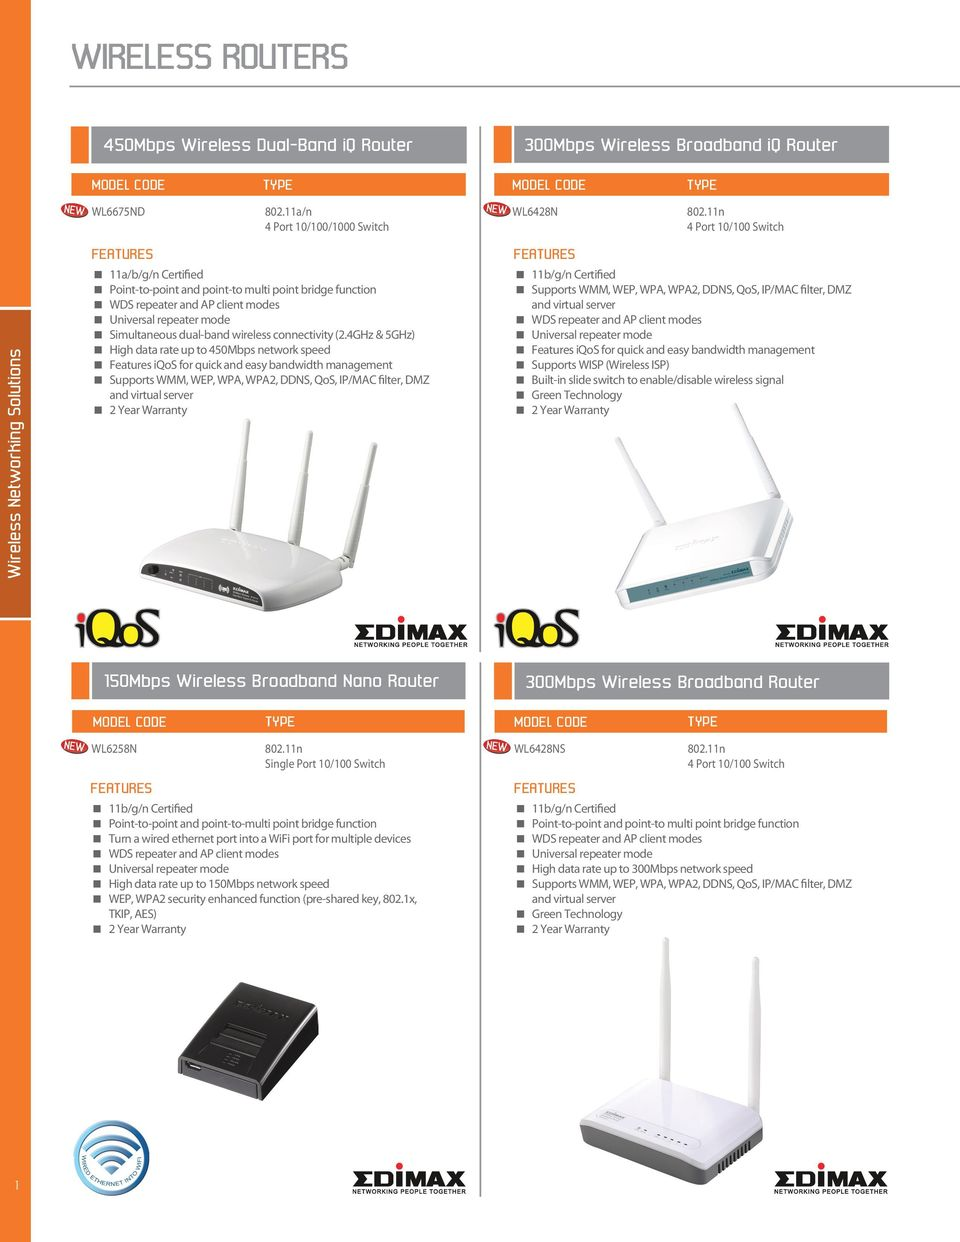 4GHz & 5GHz) High data rate up to 450Mbps network speed Features iqos for quick and easy bandwidth management Supports WMM, WEP, WPA, WPA2, DDNS, QoS, IP/MAC filter, DMZ and virtual server 150Mbps